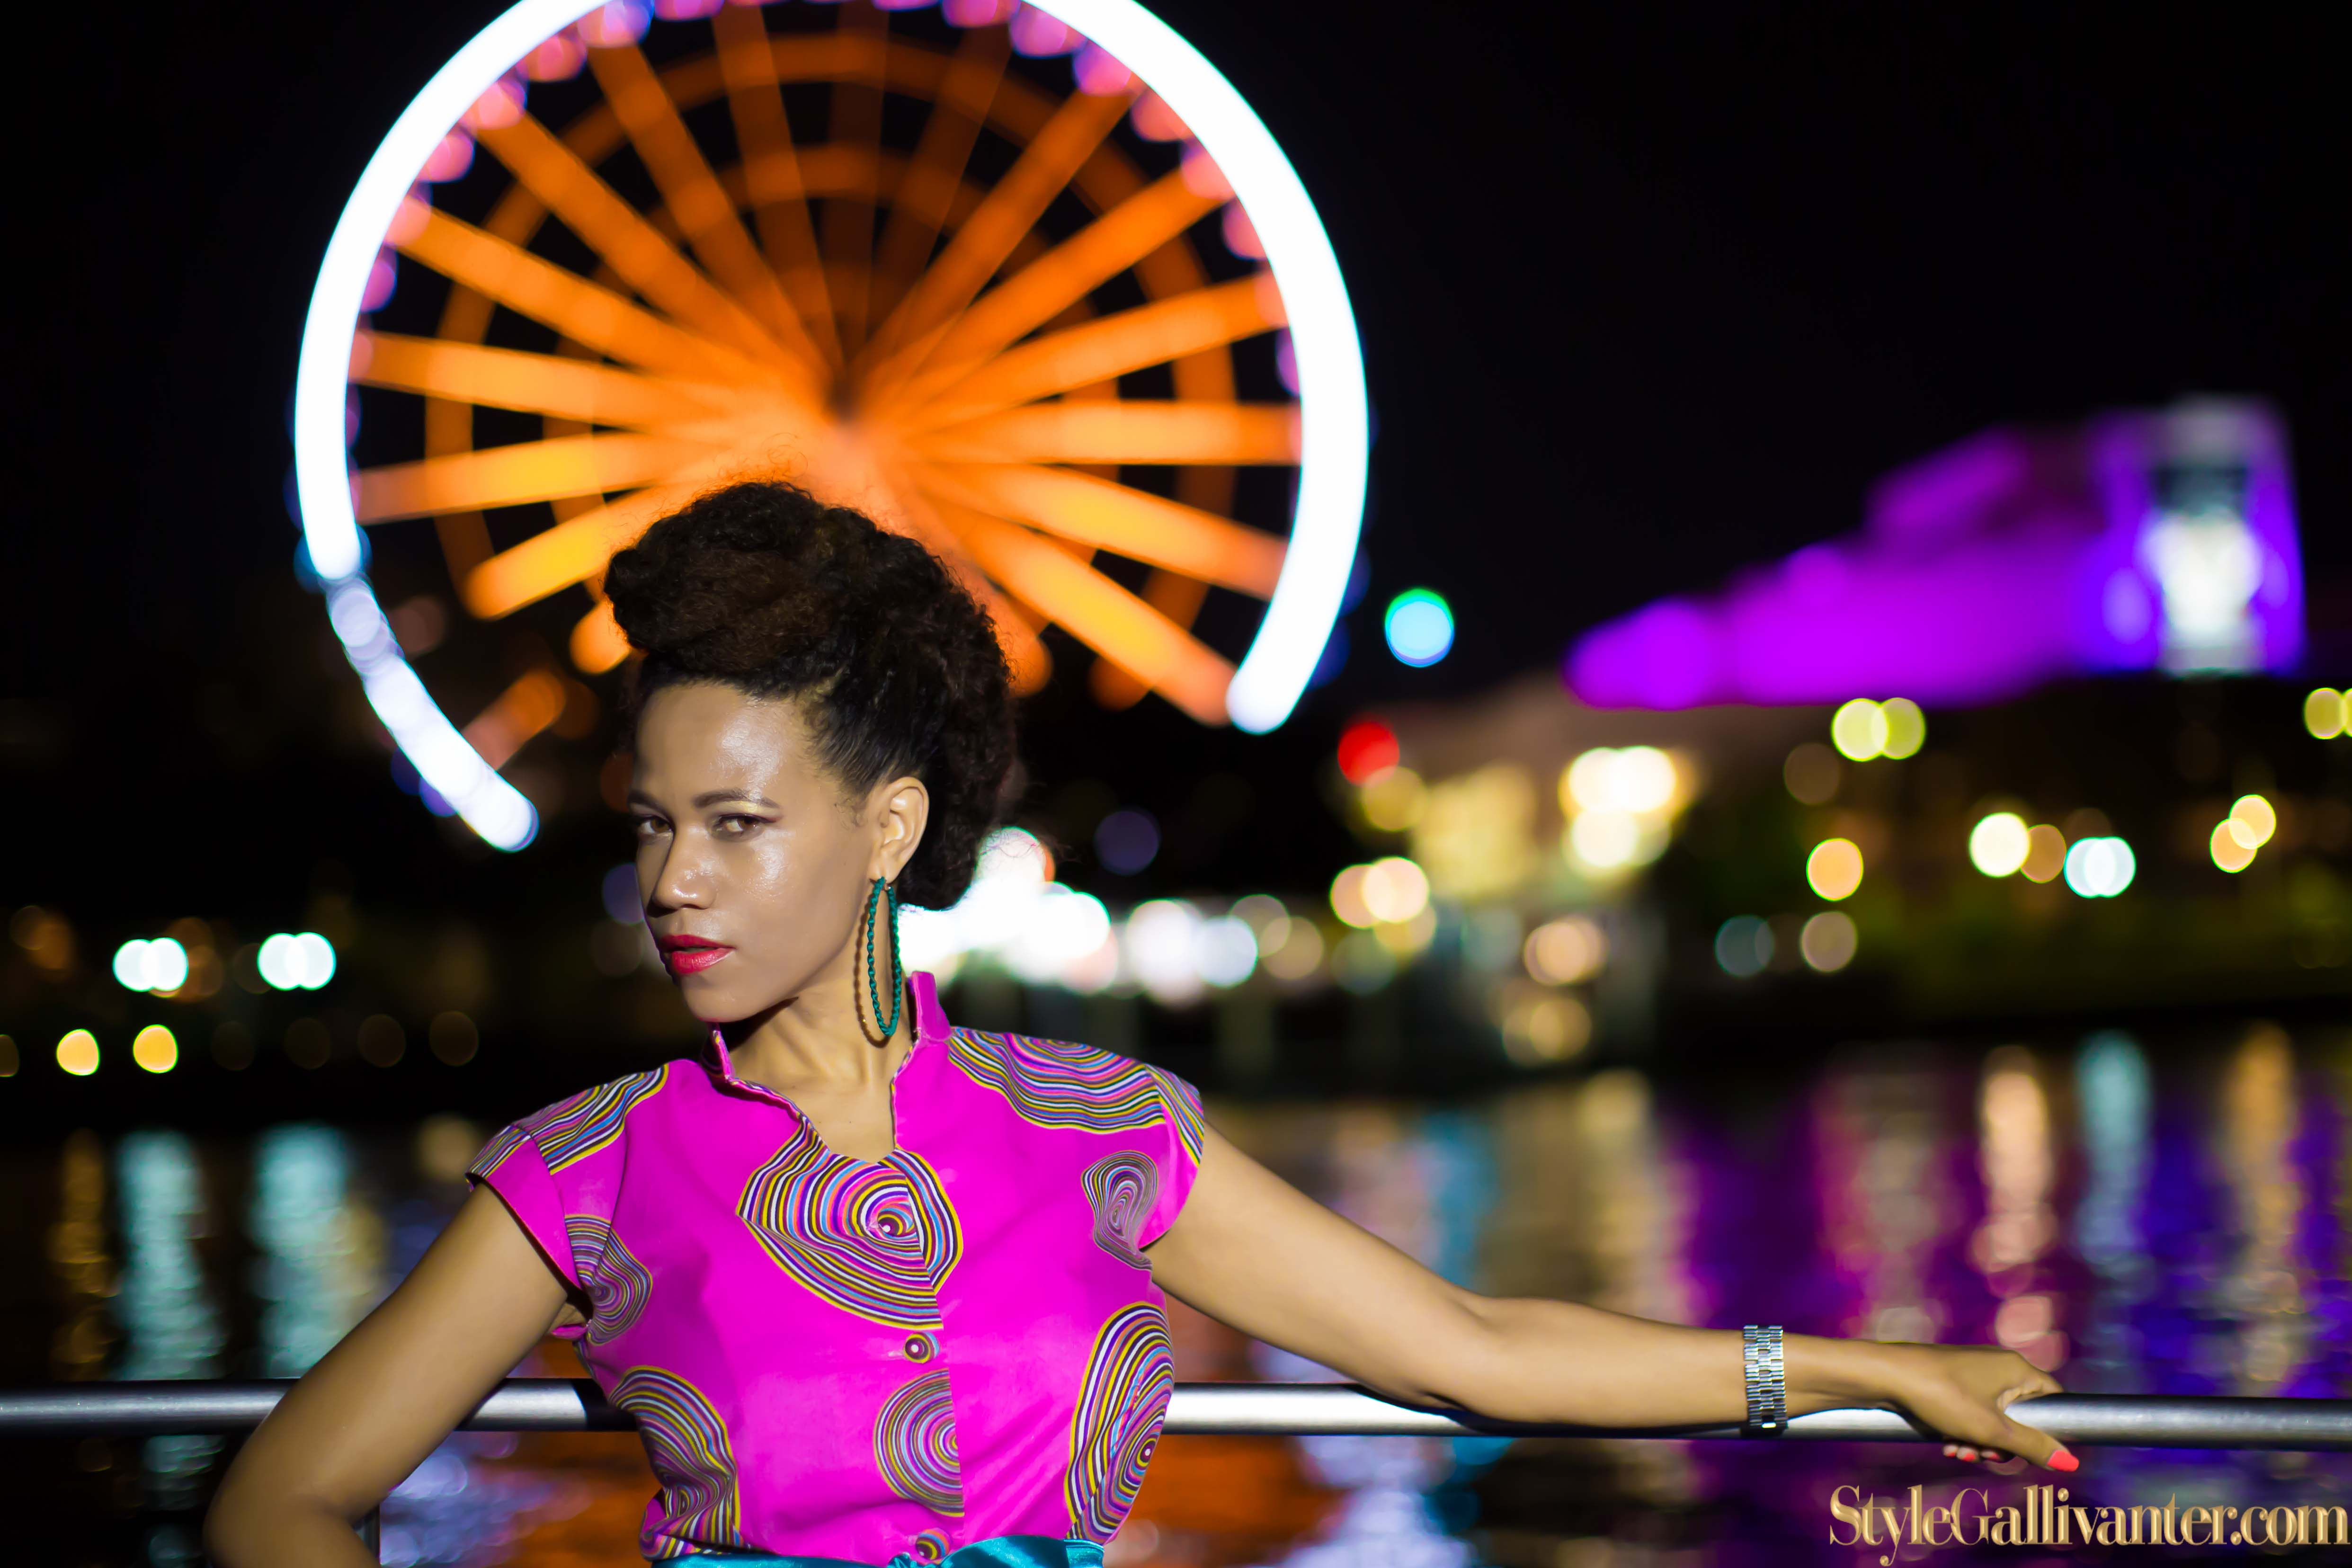 best-new-year's-fireworks-2014_best-new-fashion-blog-2014_best-new-bloggers-melbourne-australia-2014_top-african-hair-bloggers_best-african-fashion-bloggers-2